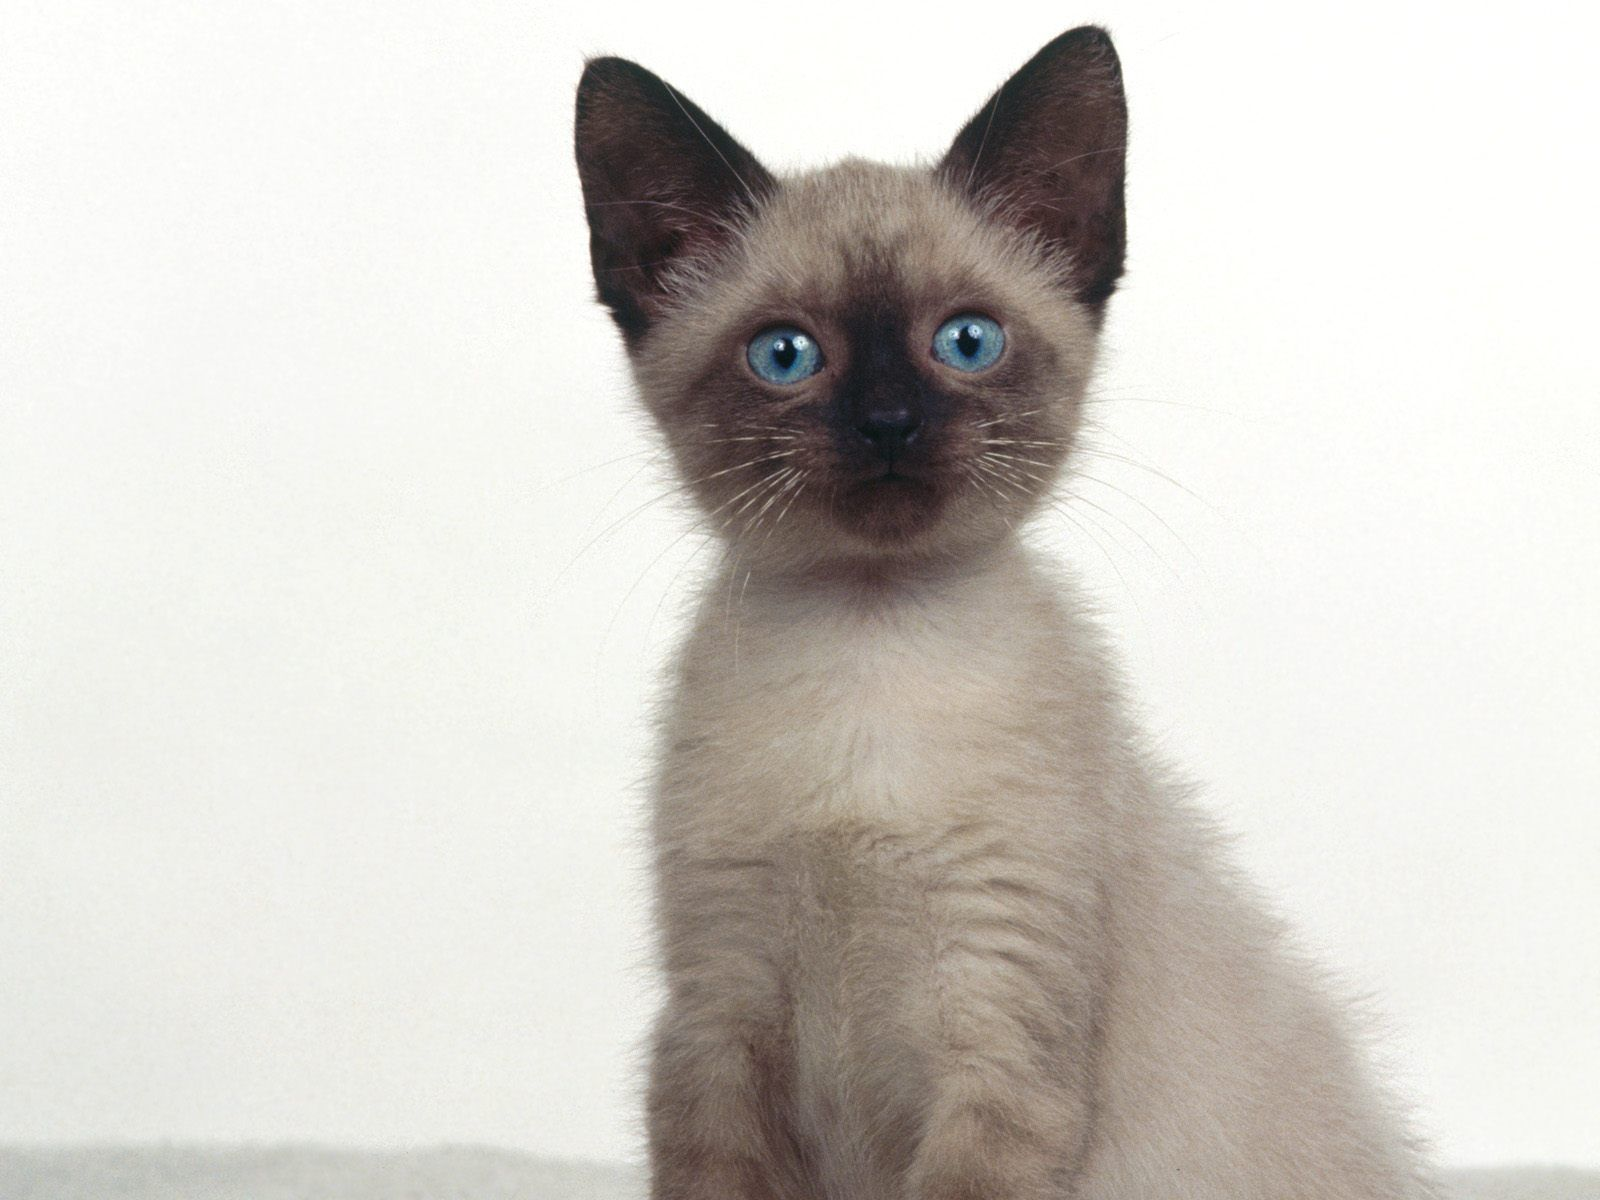 Siamese Cat Siamese kittens, Siamese cats, Cat breeds